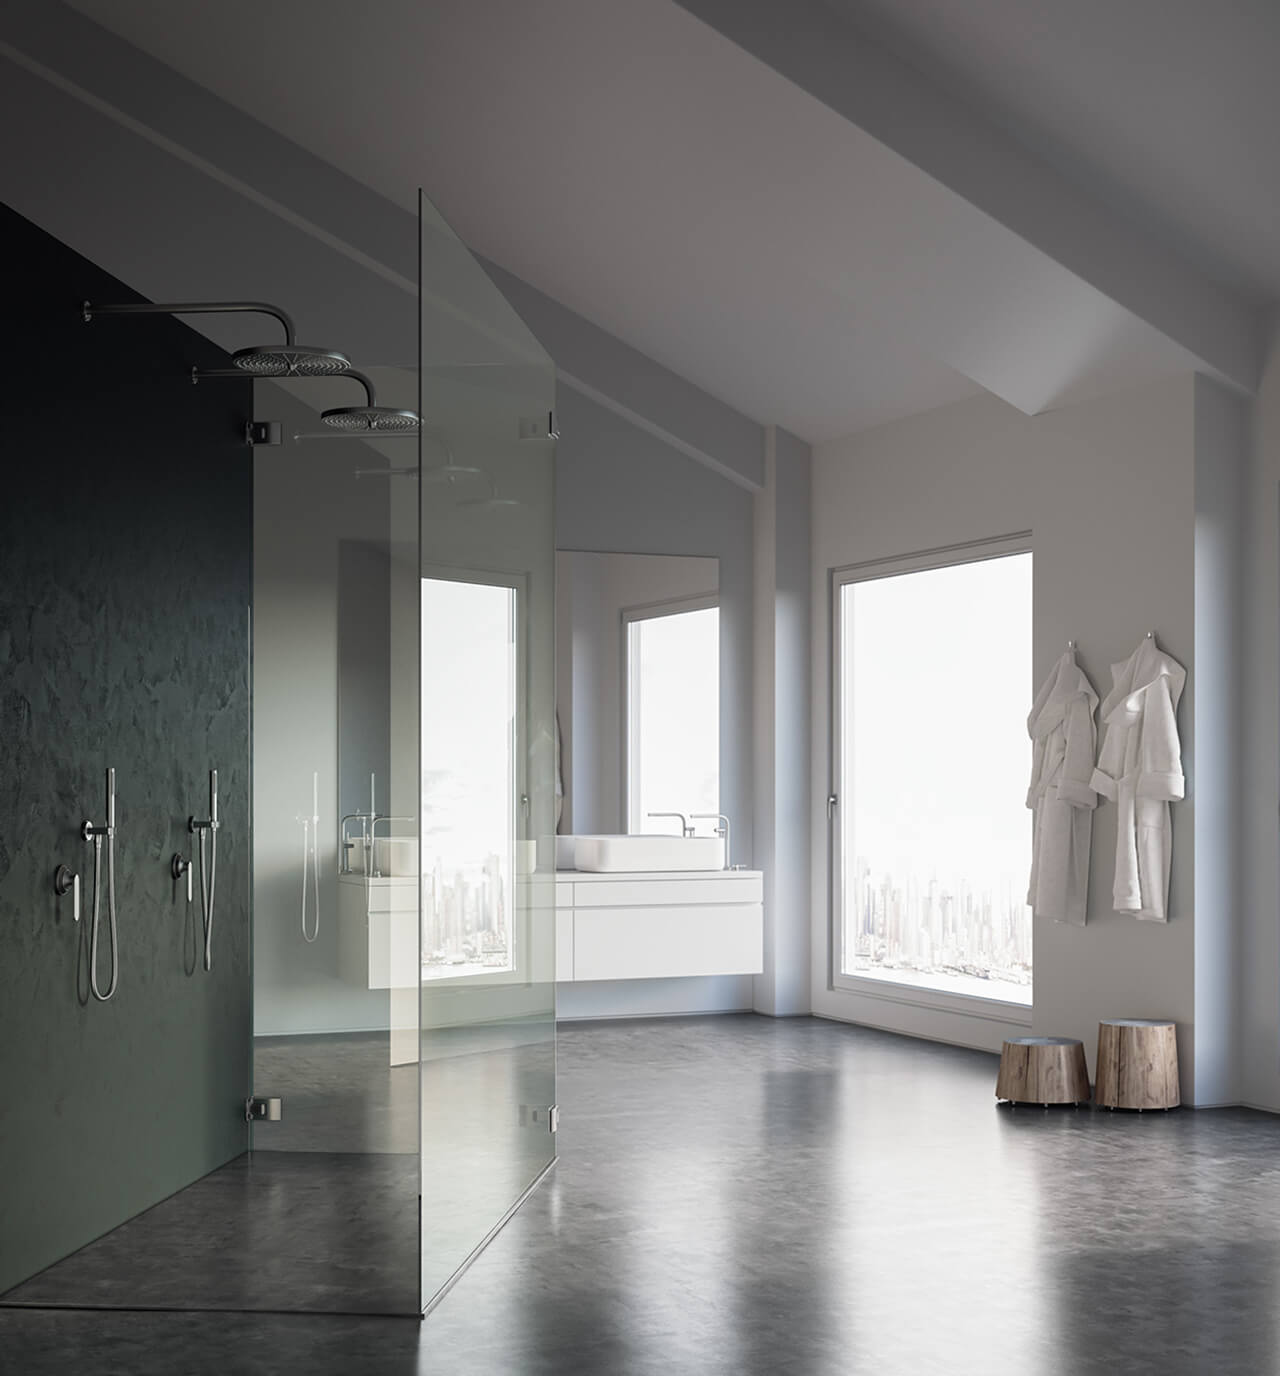 Computer Generate Image Of spacious modern bathroom with walk in shower